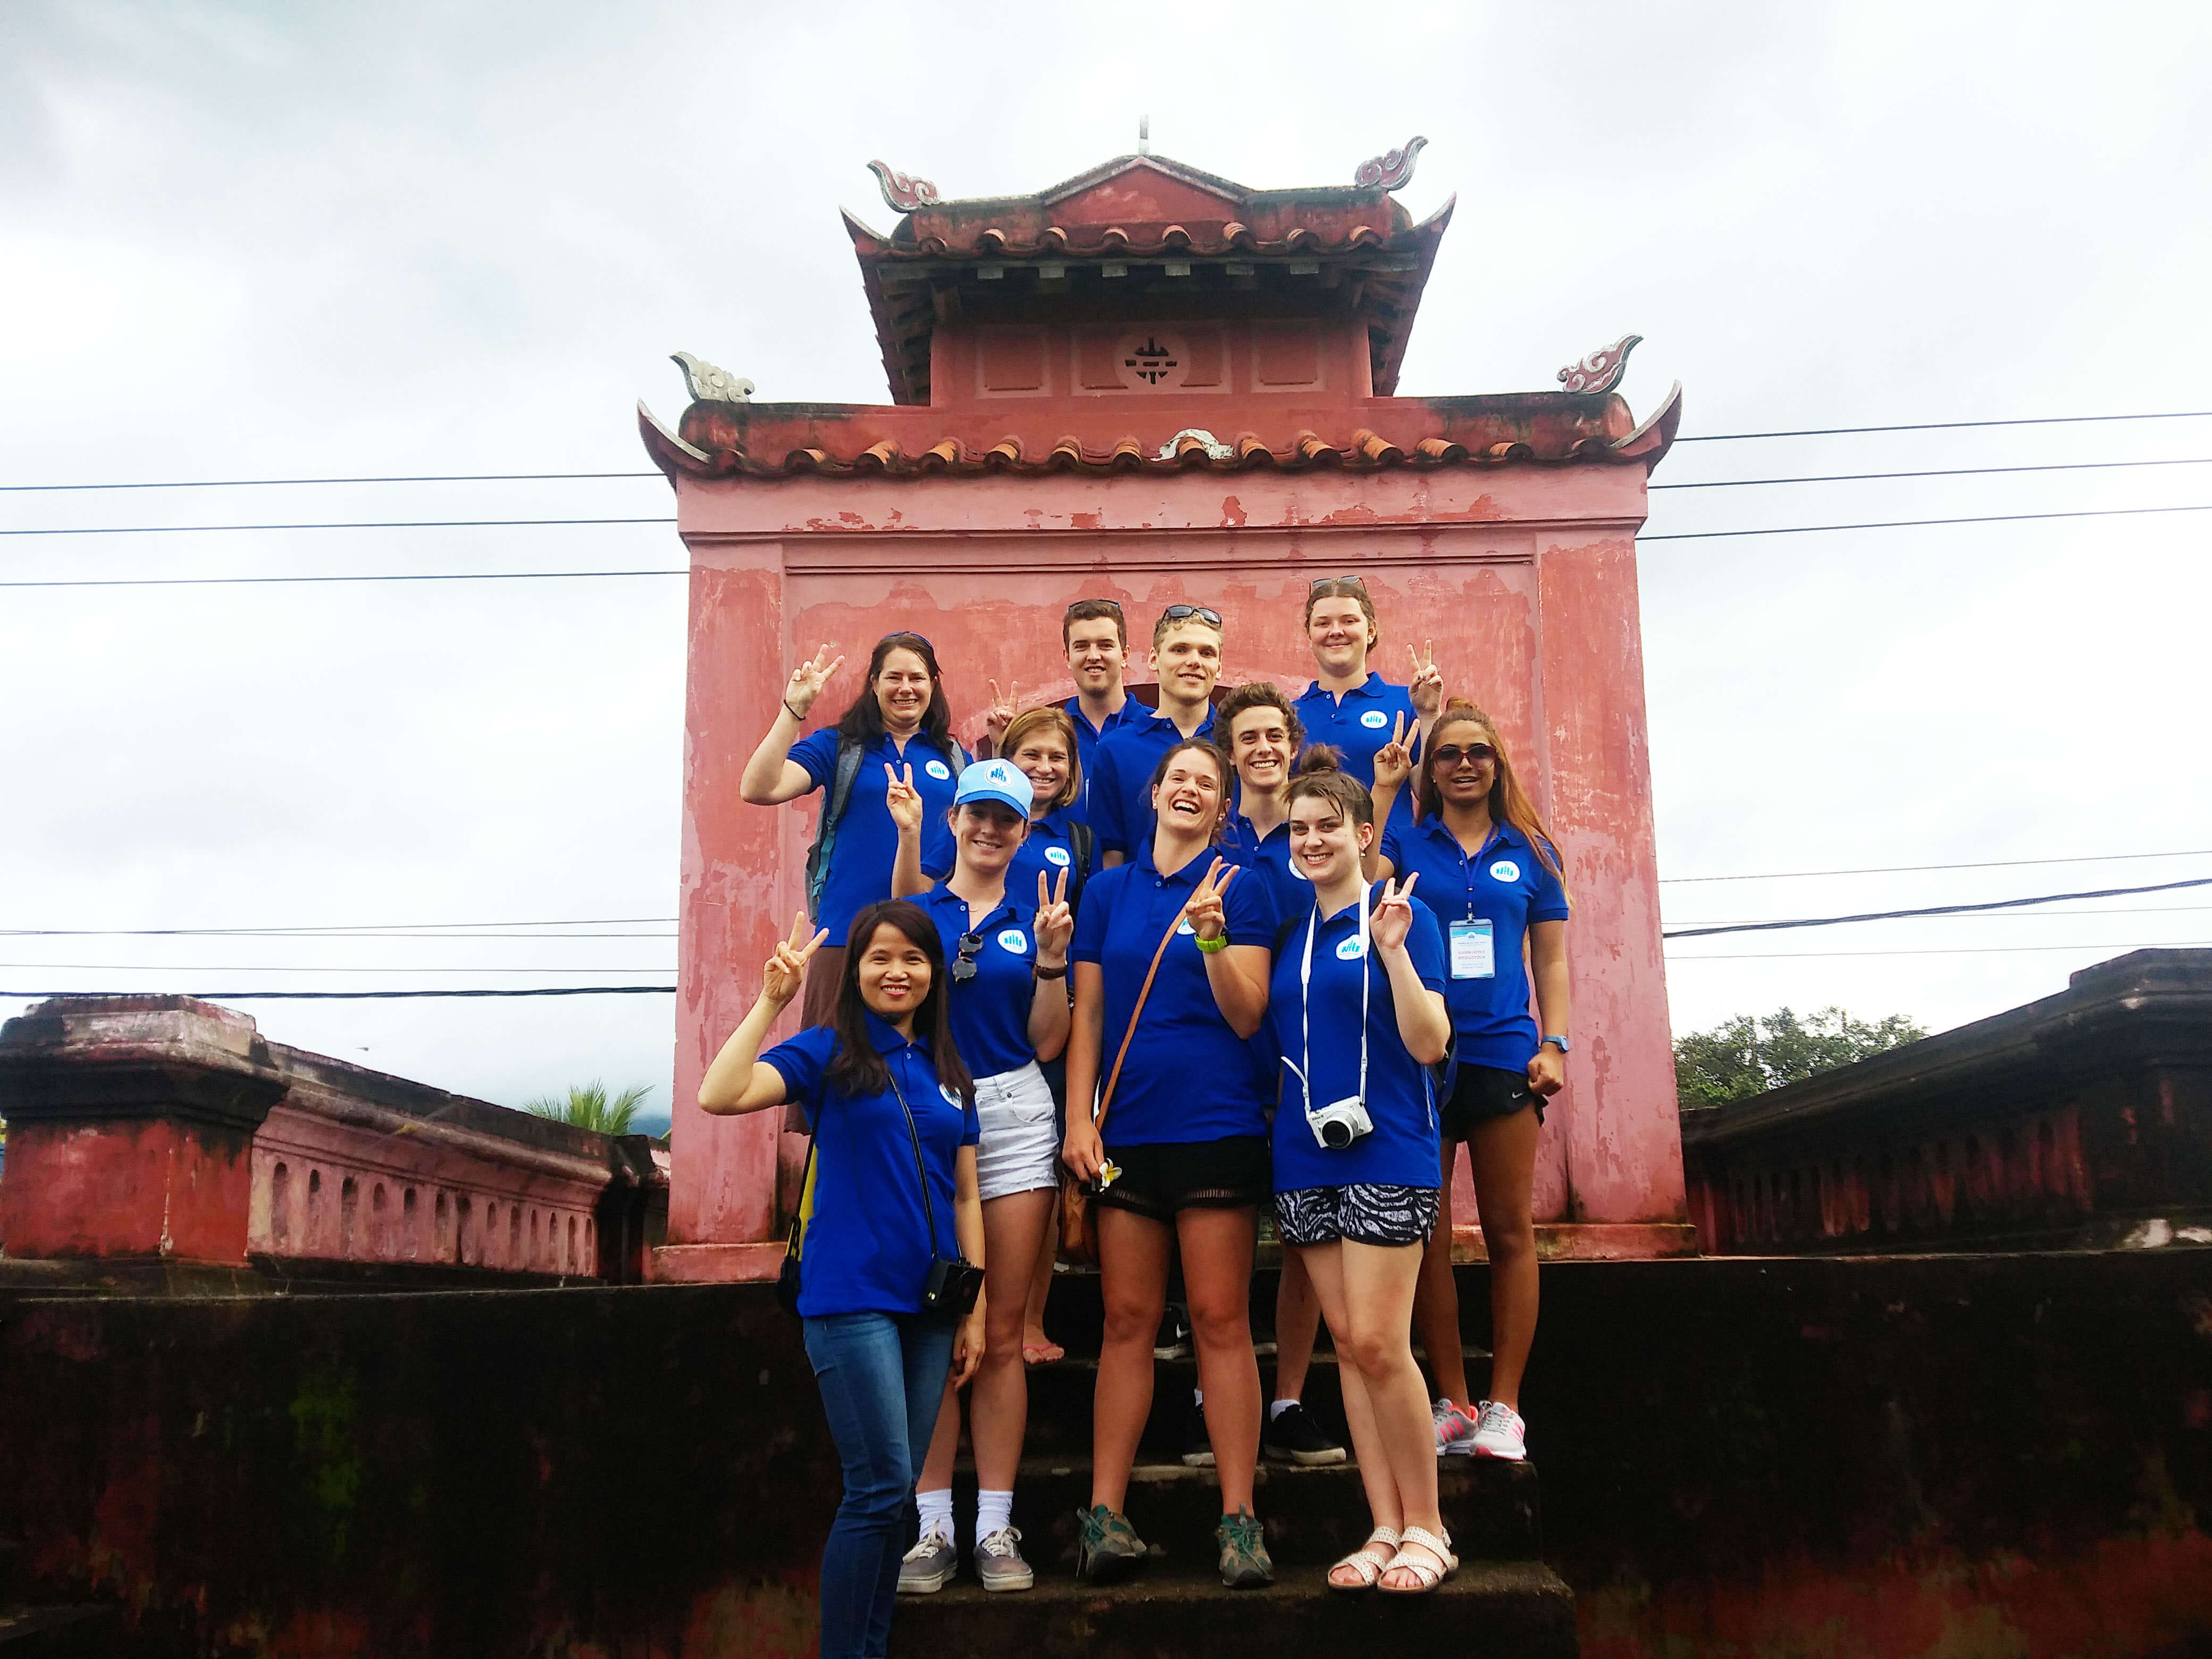 Students from Southern Cross University, Australia attend a summer program at NTU